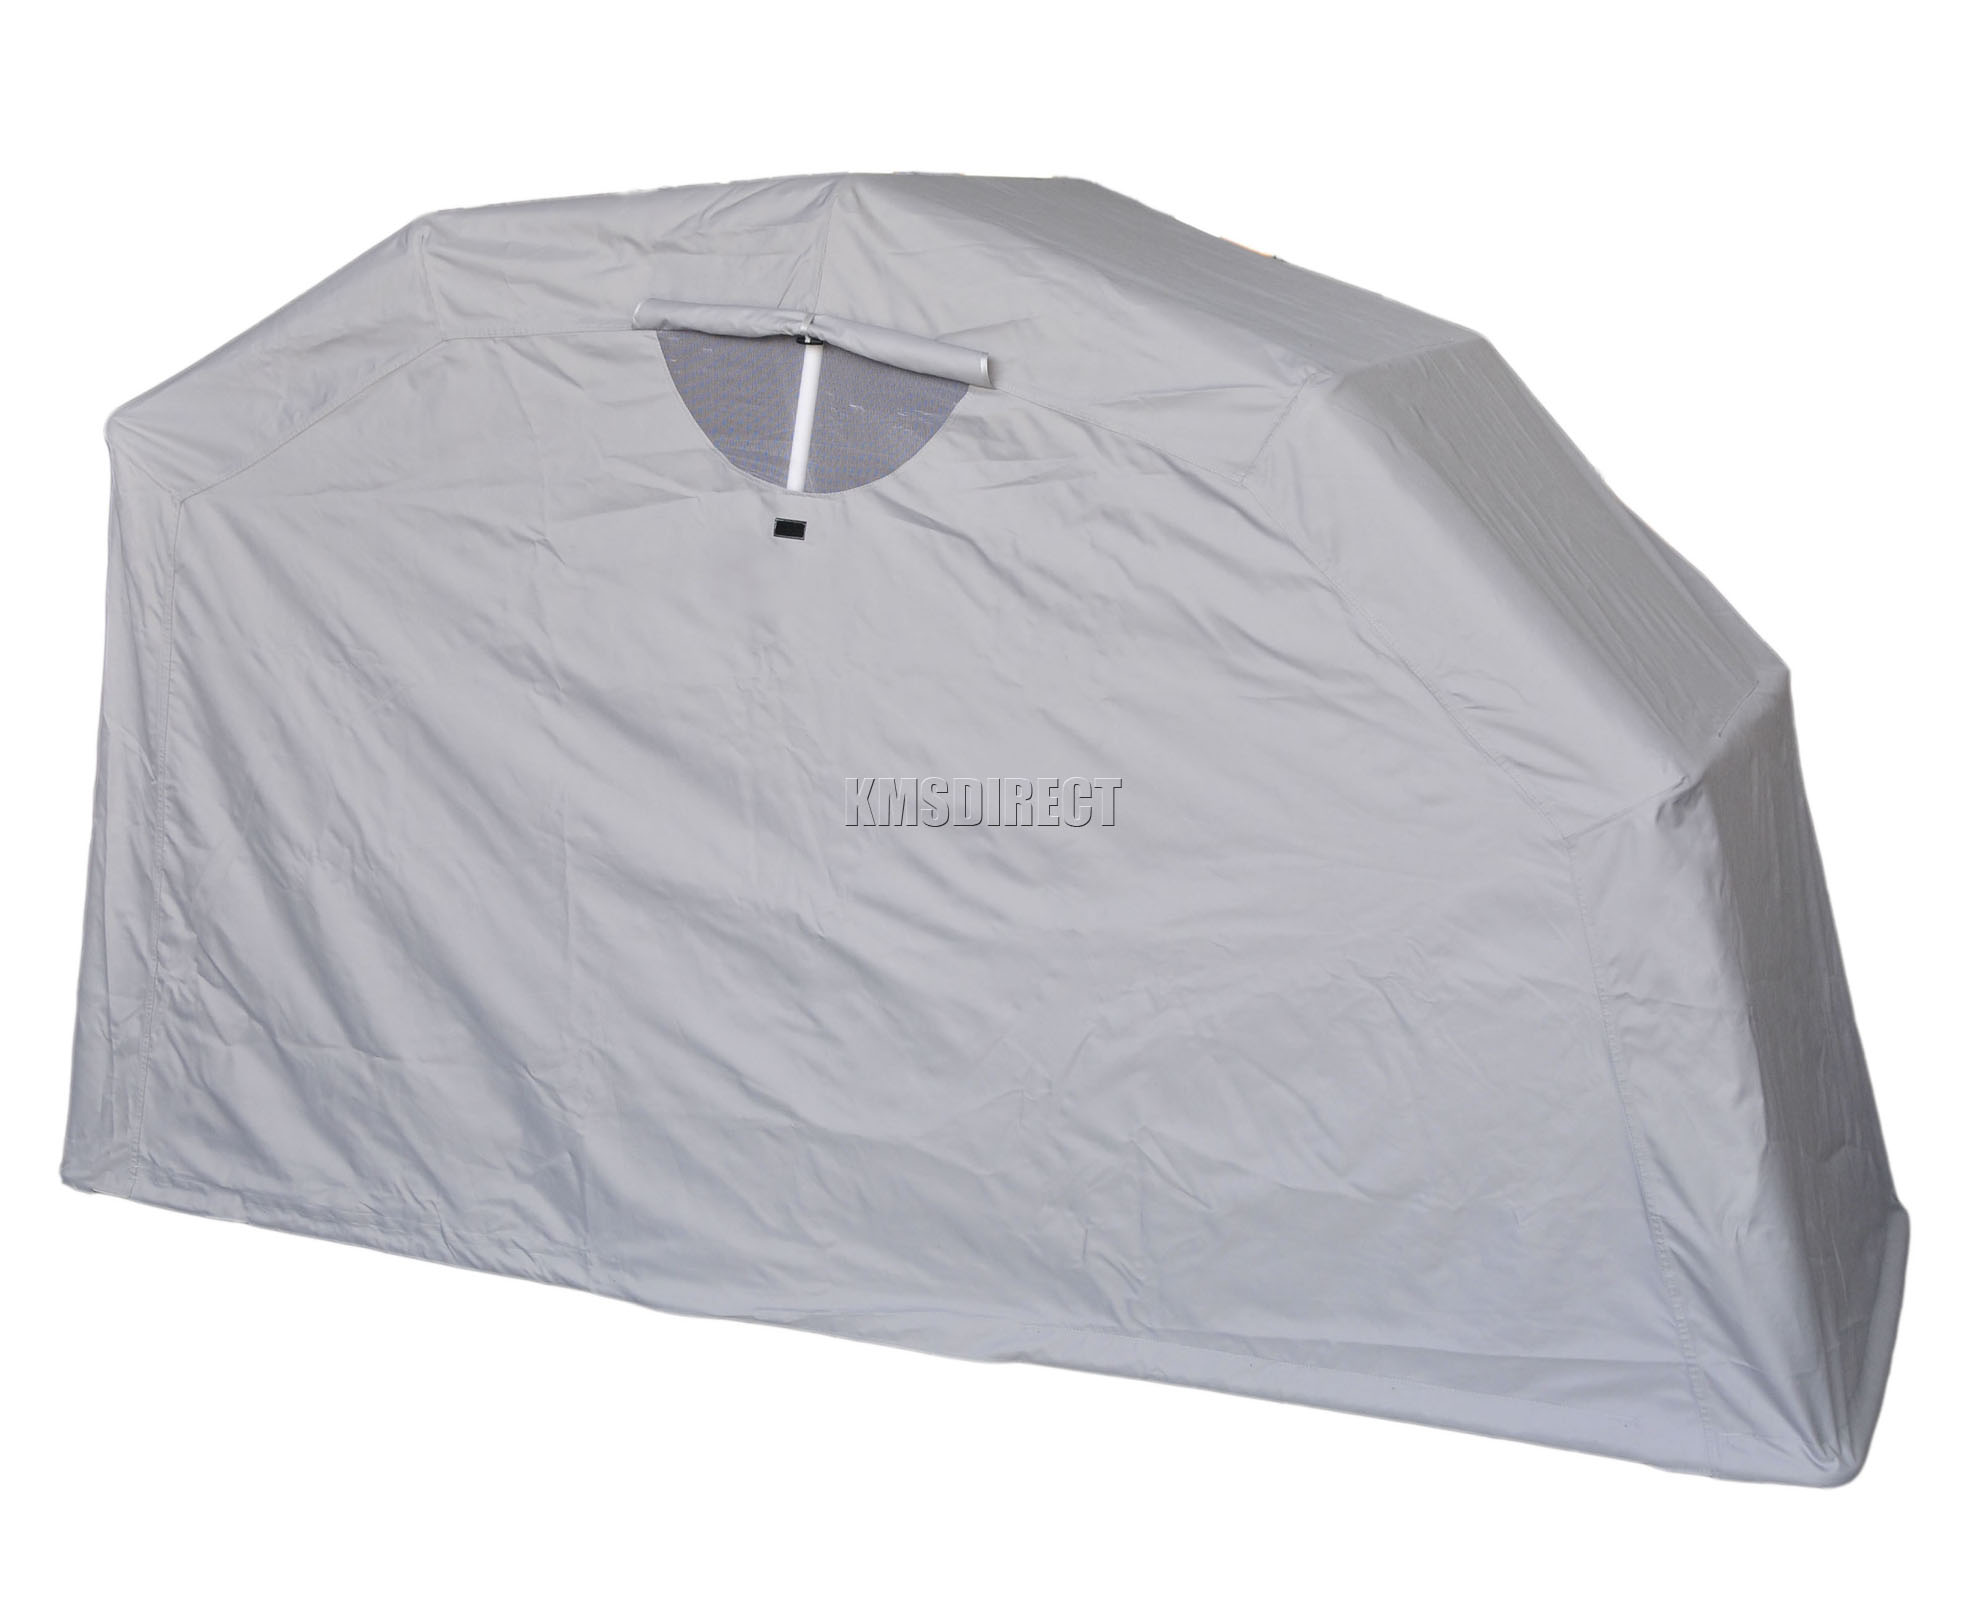 Cycle Shelter Folding Motorcycle Cover : Waterproof motor bike folding cover storage shed shelter